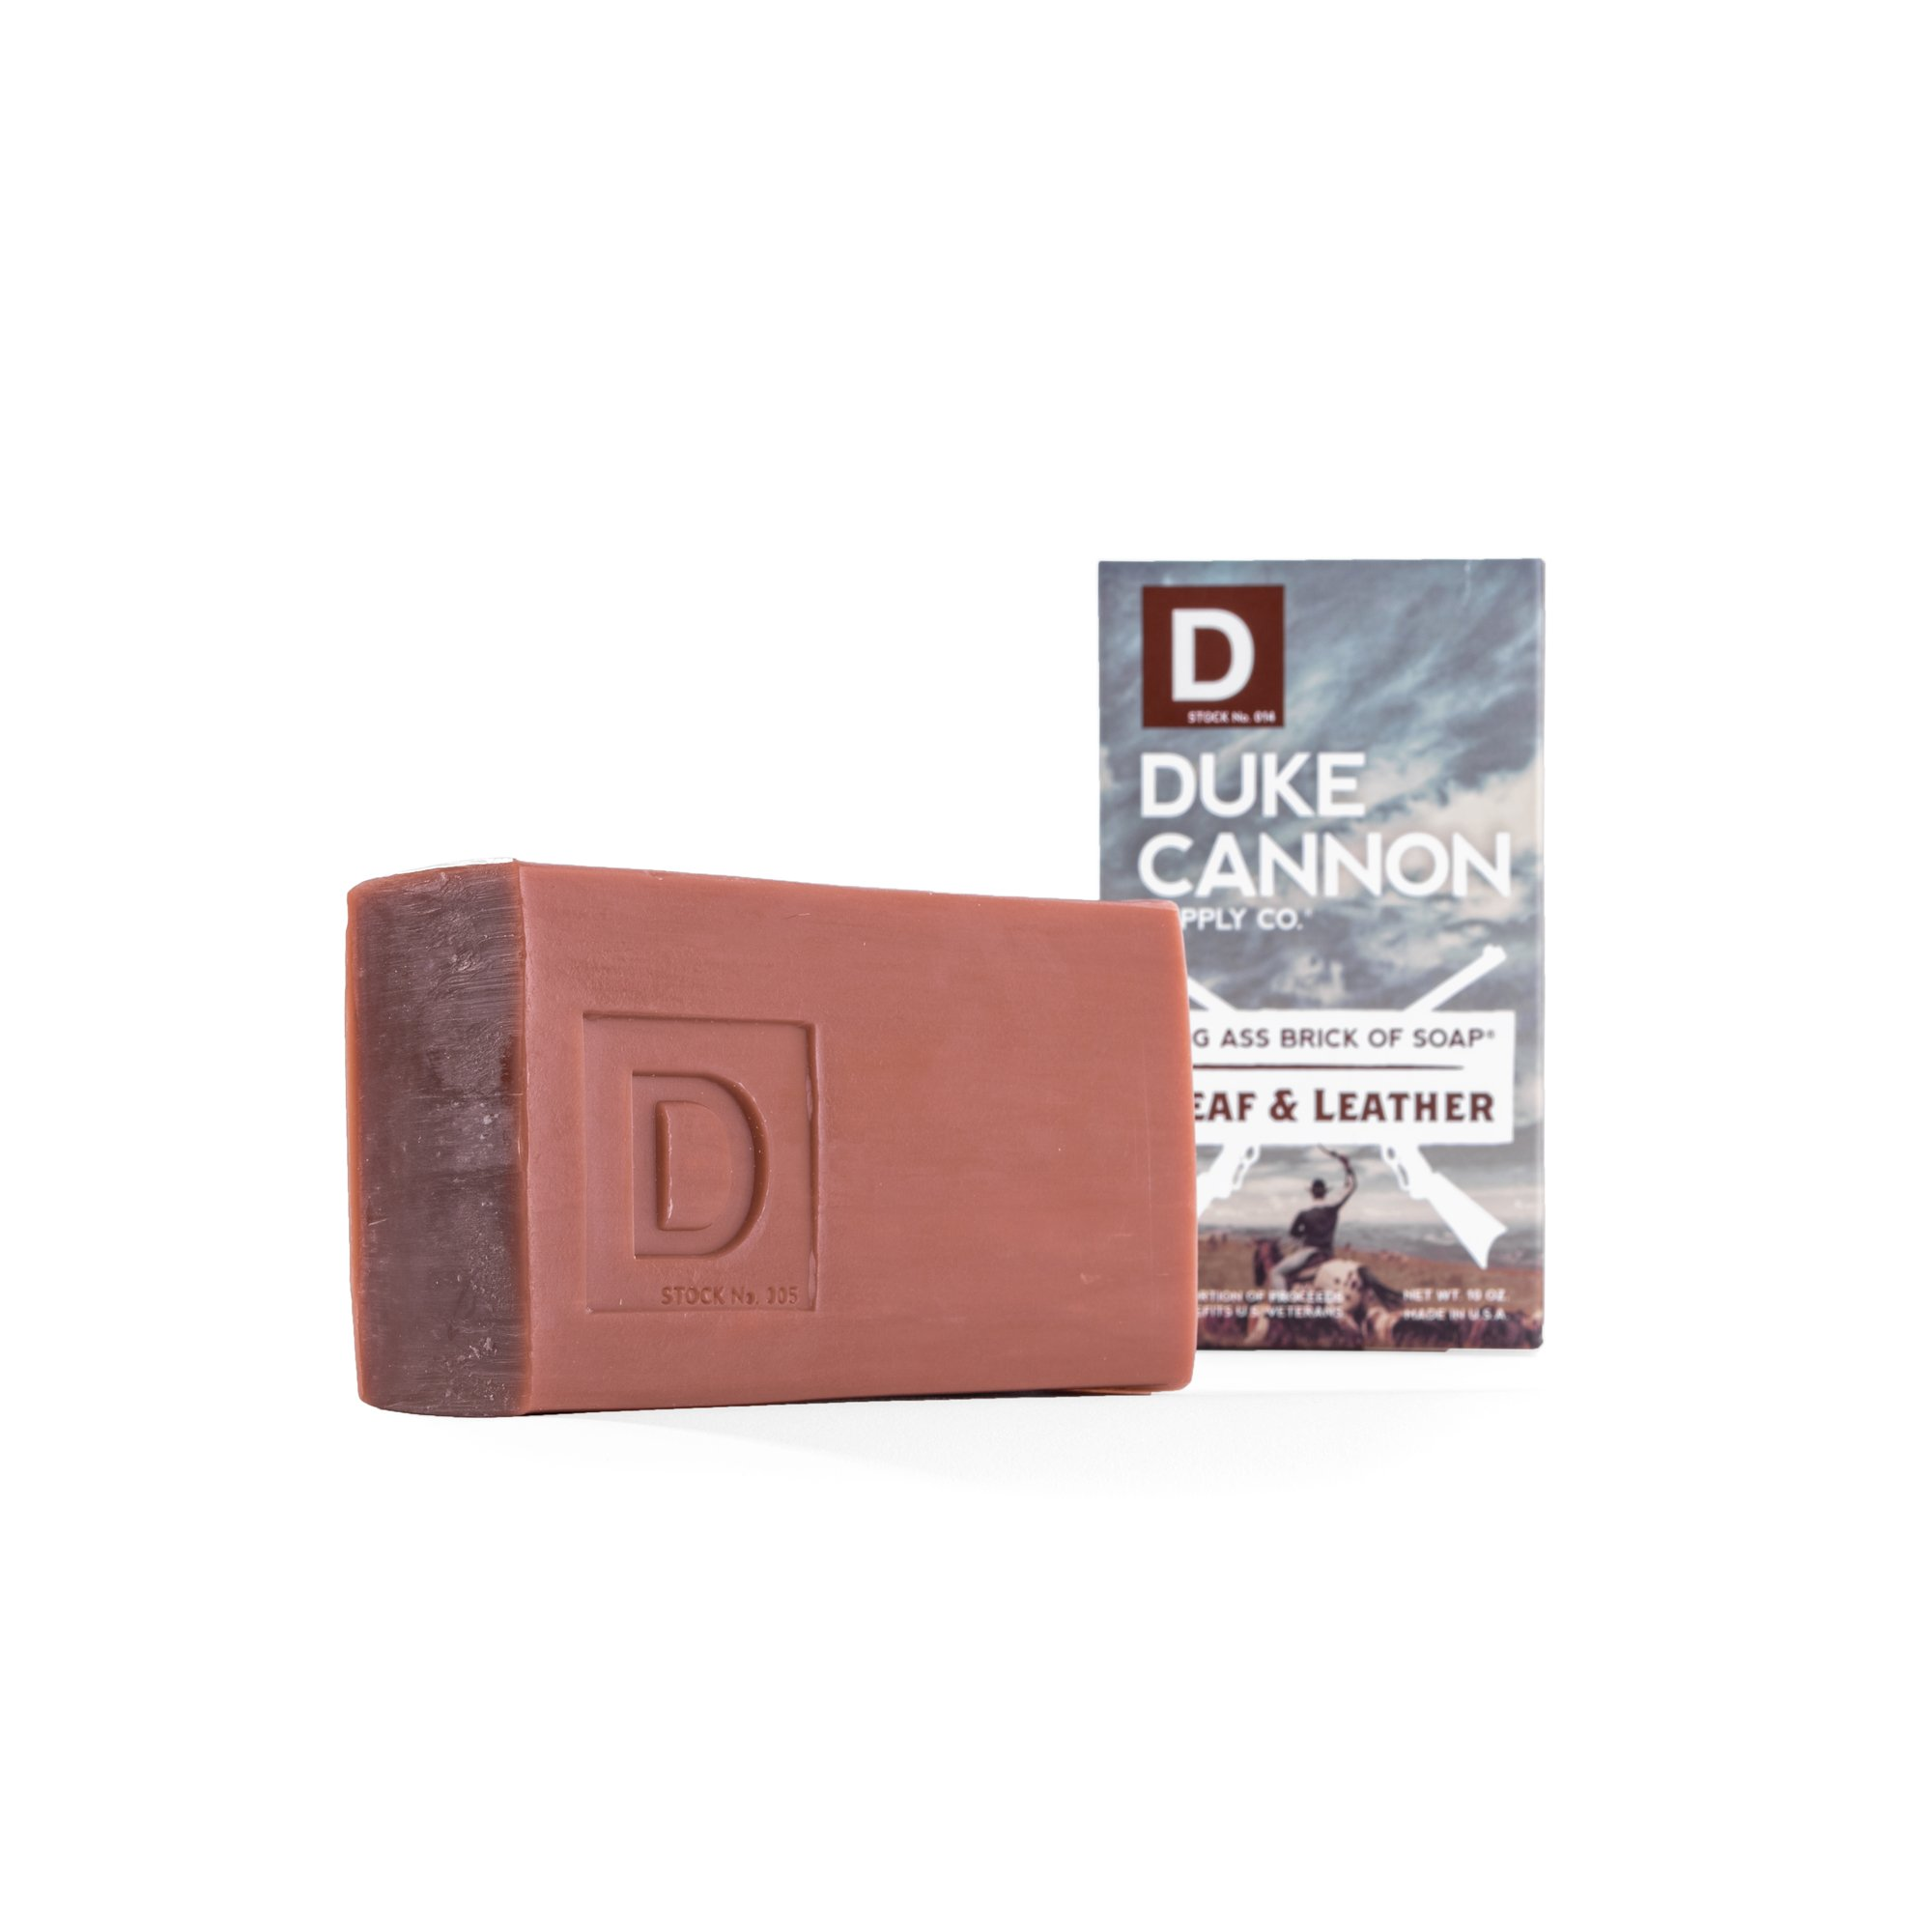 Duke Cannon Big American Brick of Soap Smells Like Leaf and Leather